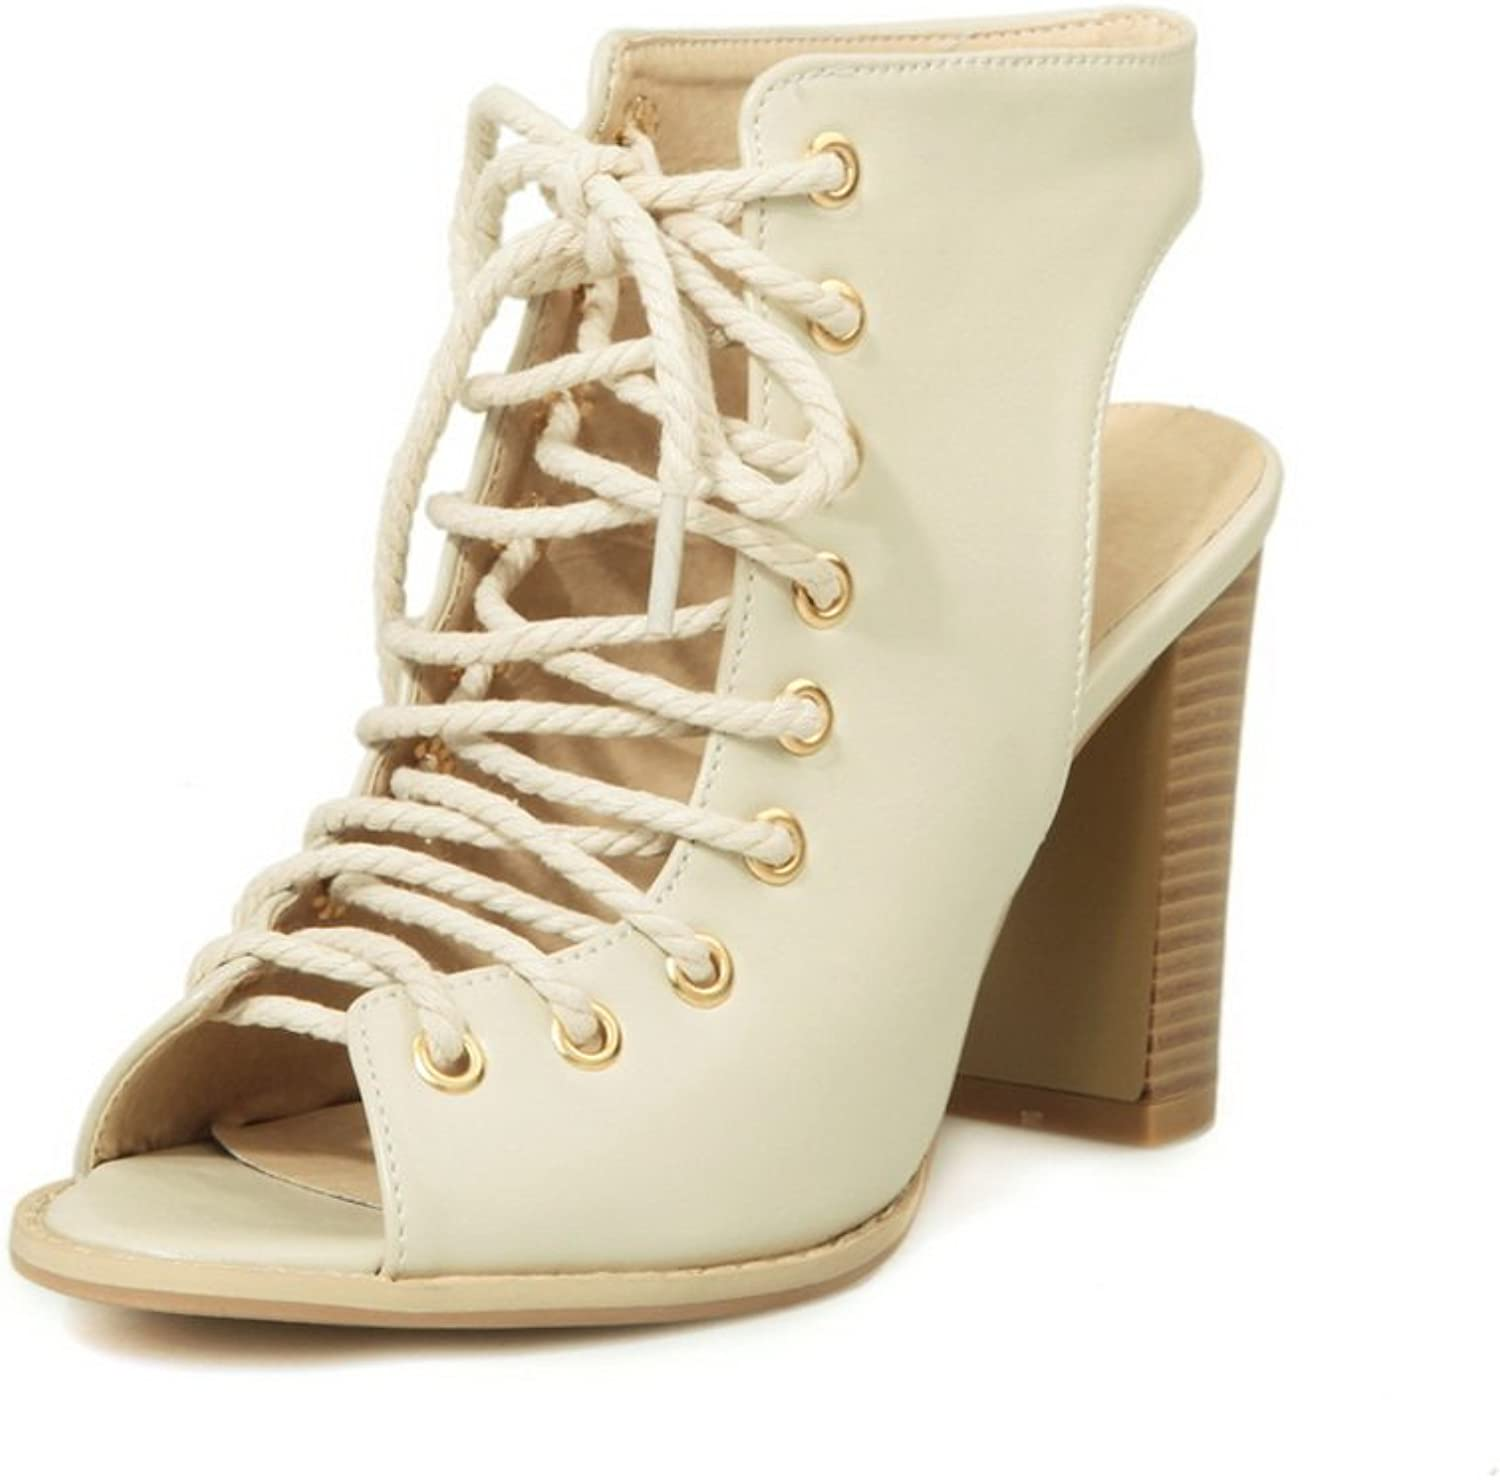 1TO9 Womens Chunky Heels Lace-Up Beige Soft Material Sandals - 12 B(M) US